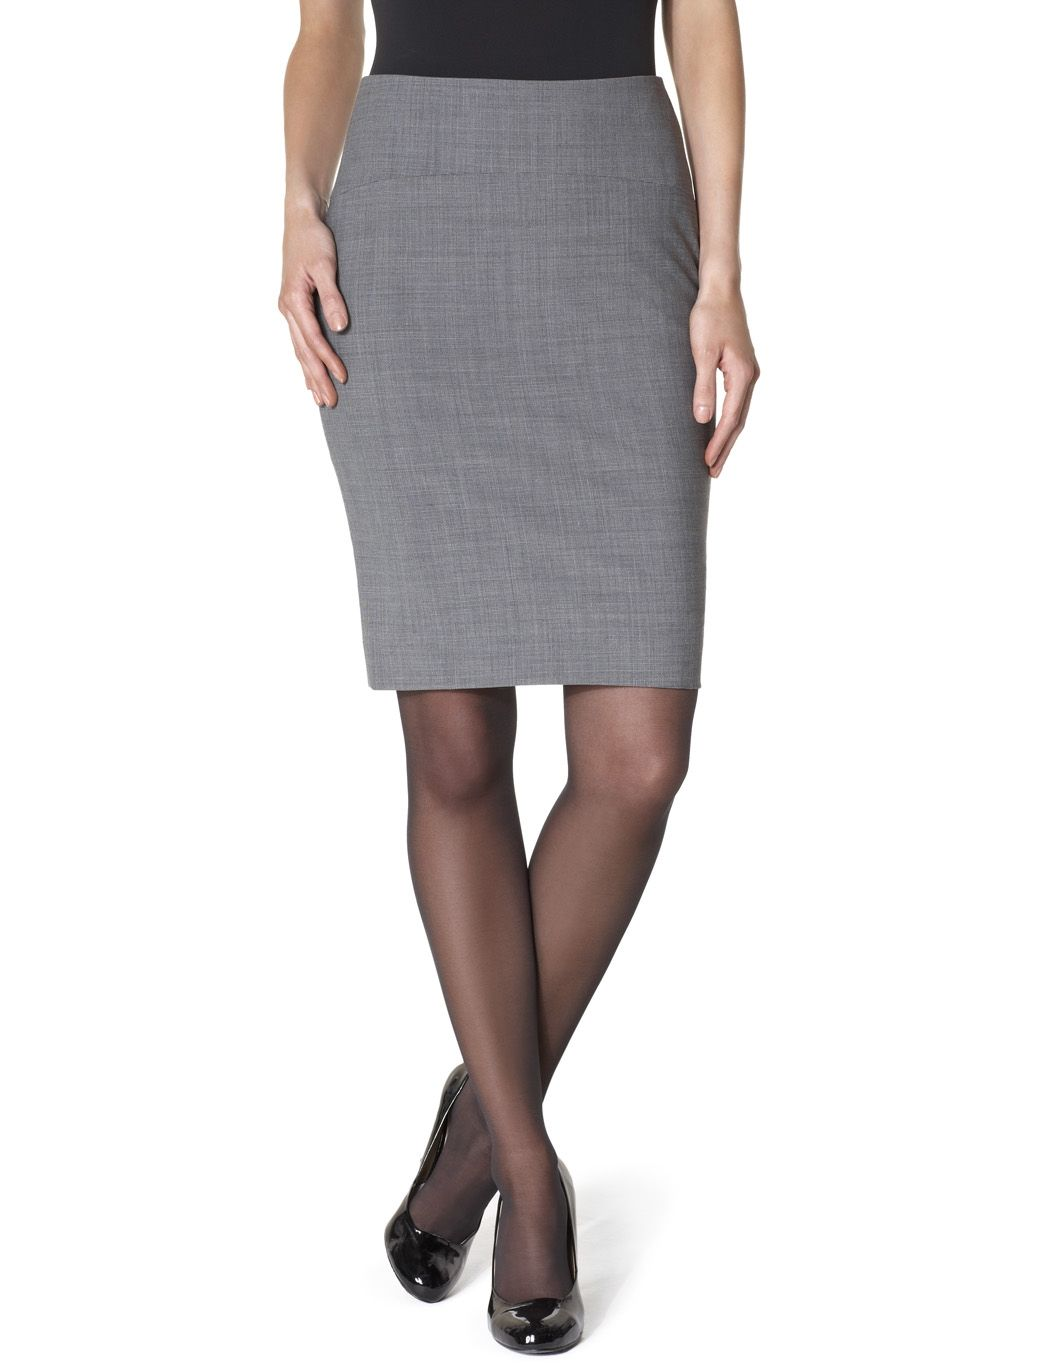 (What to wear to an interview) Appropriate stocking and shoe selections 7962e7b5f741